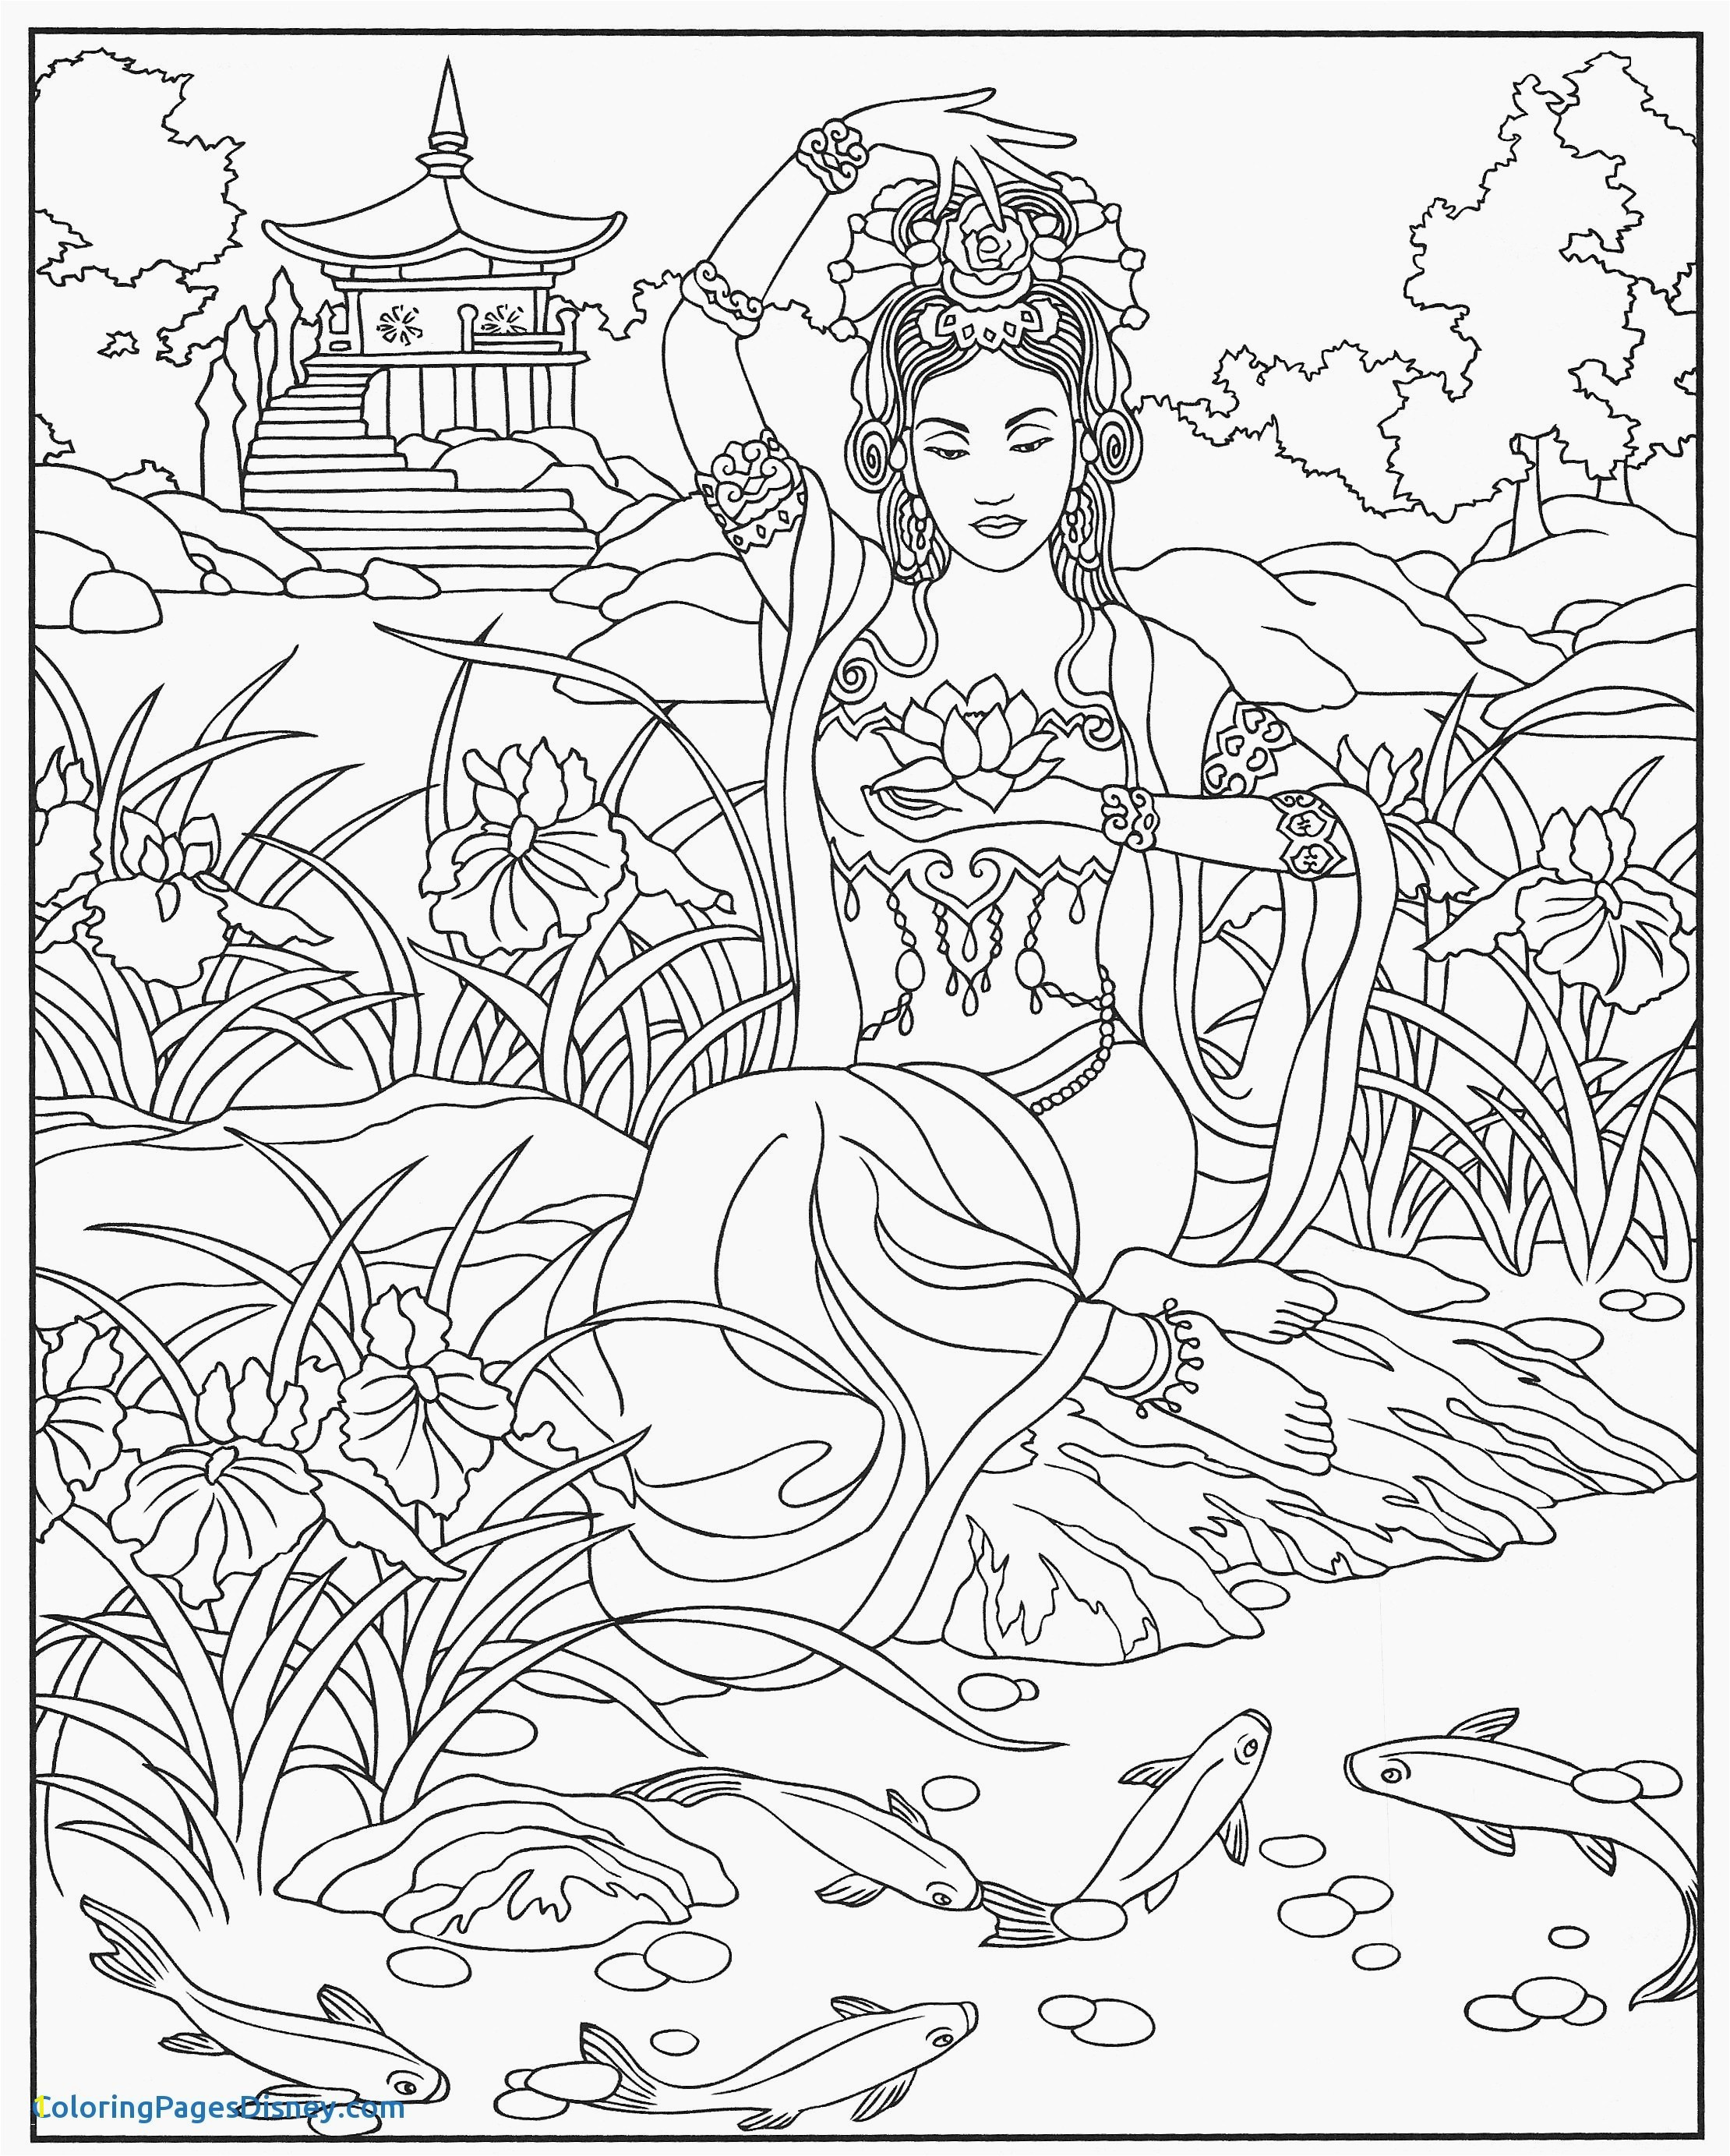 Coloring Pages Lion Luxury Cool Coloring Page Unique Witch Coloring Pages New Crayola Pages 0d